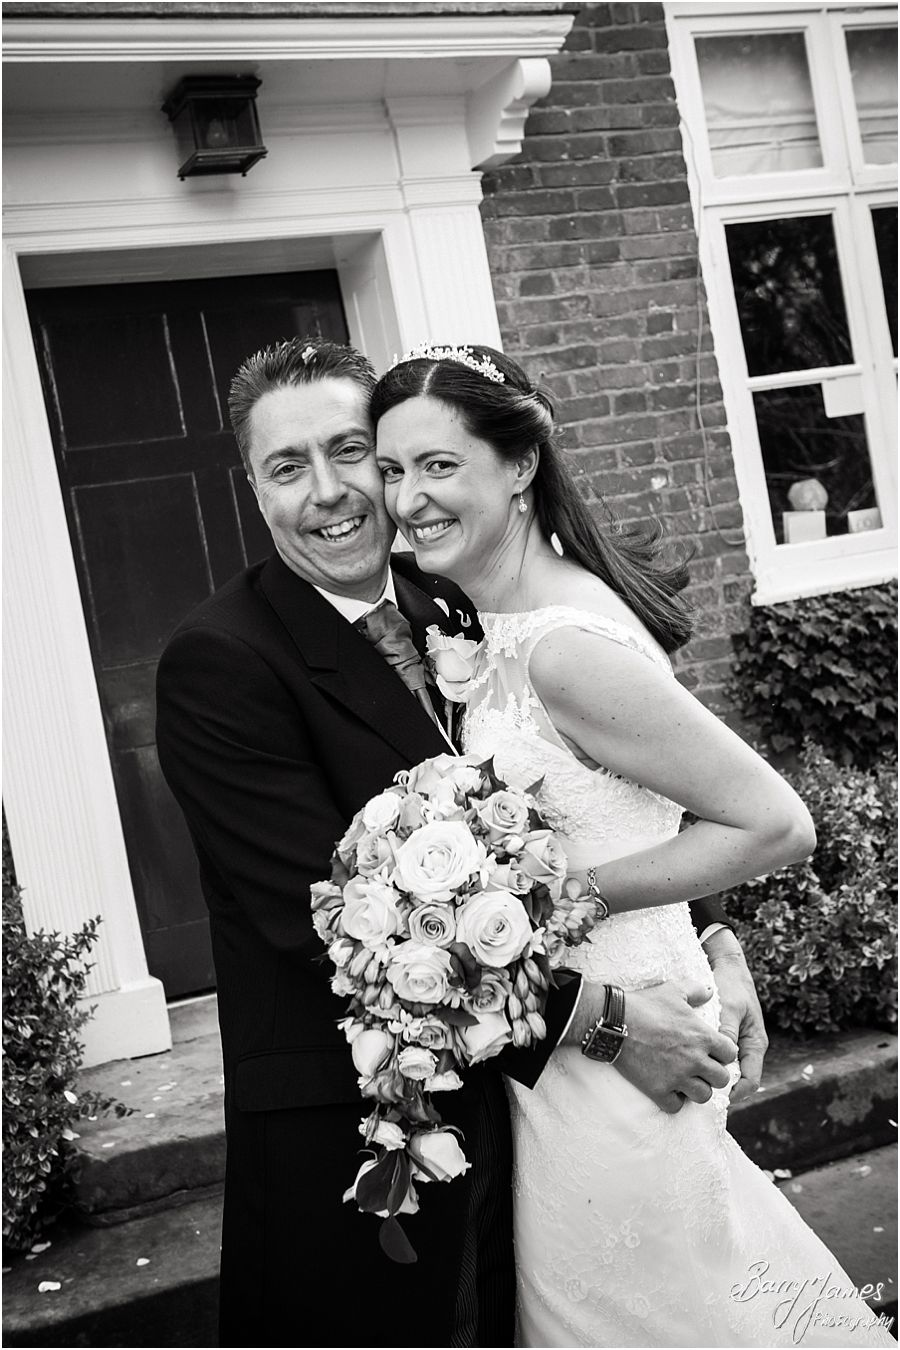 Contemporary and creative wedding photography capturing the beautiful wedding story at The Moat House in Acton Trussell by Stafford Wedding Photographer Barry James